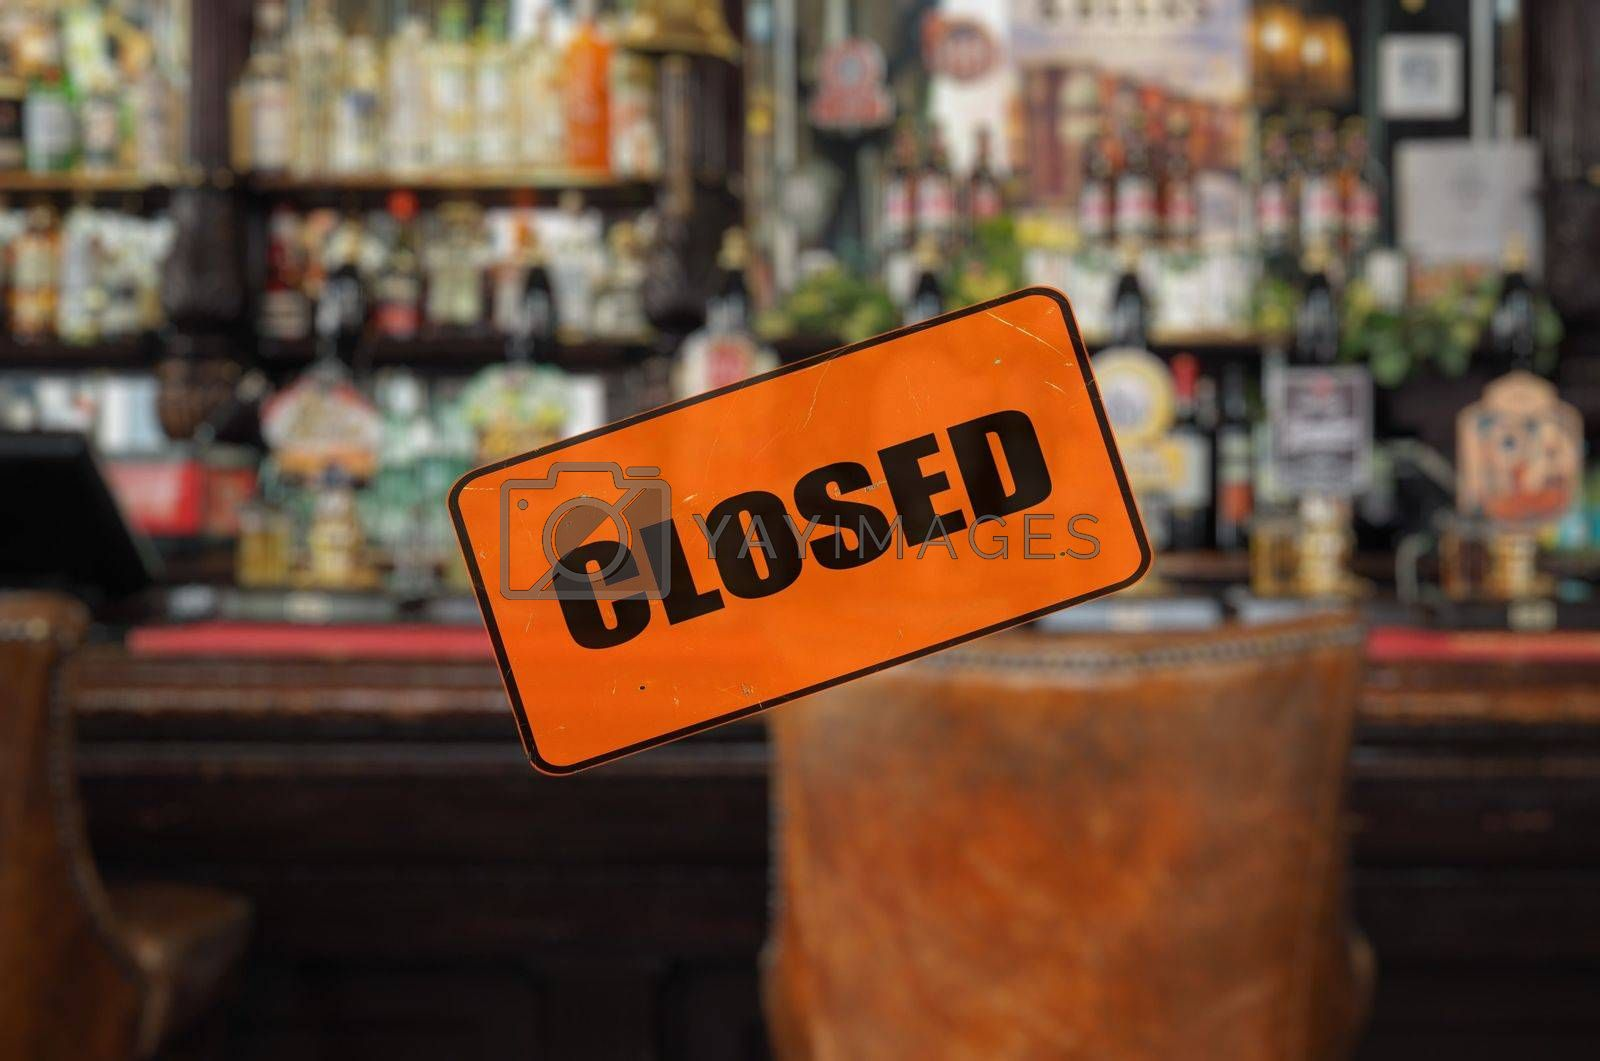 Empty pub, closed sign, focus on foreground with blurred background